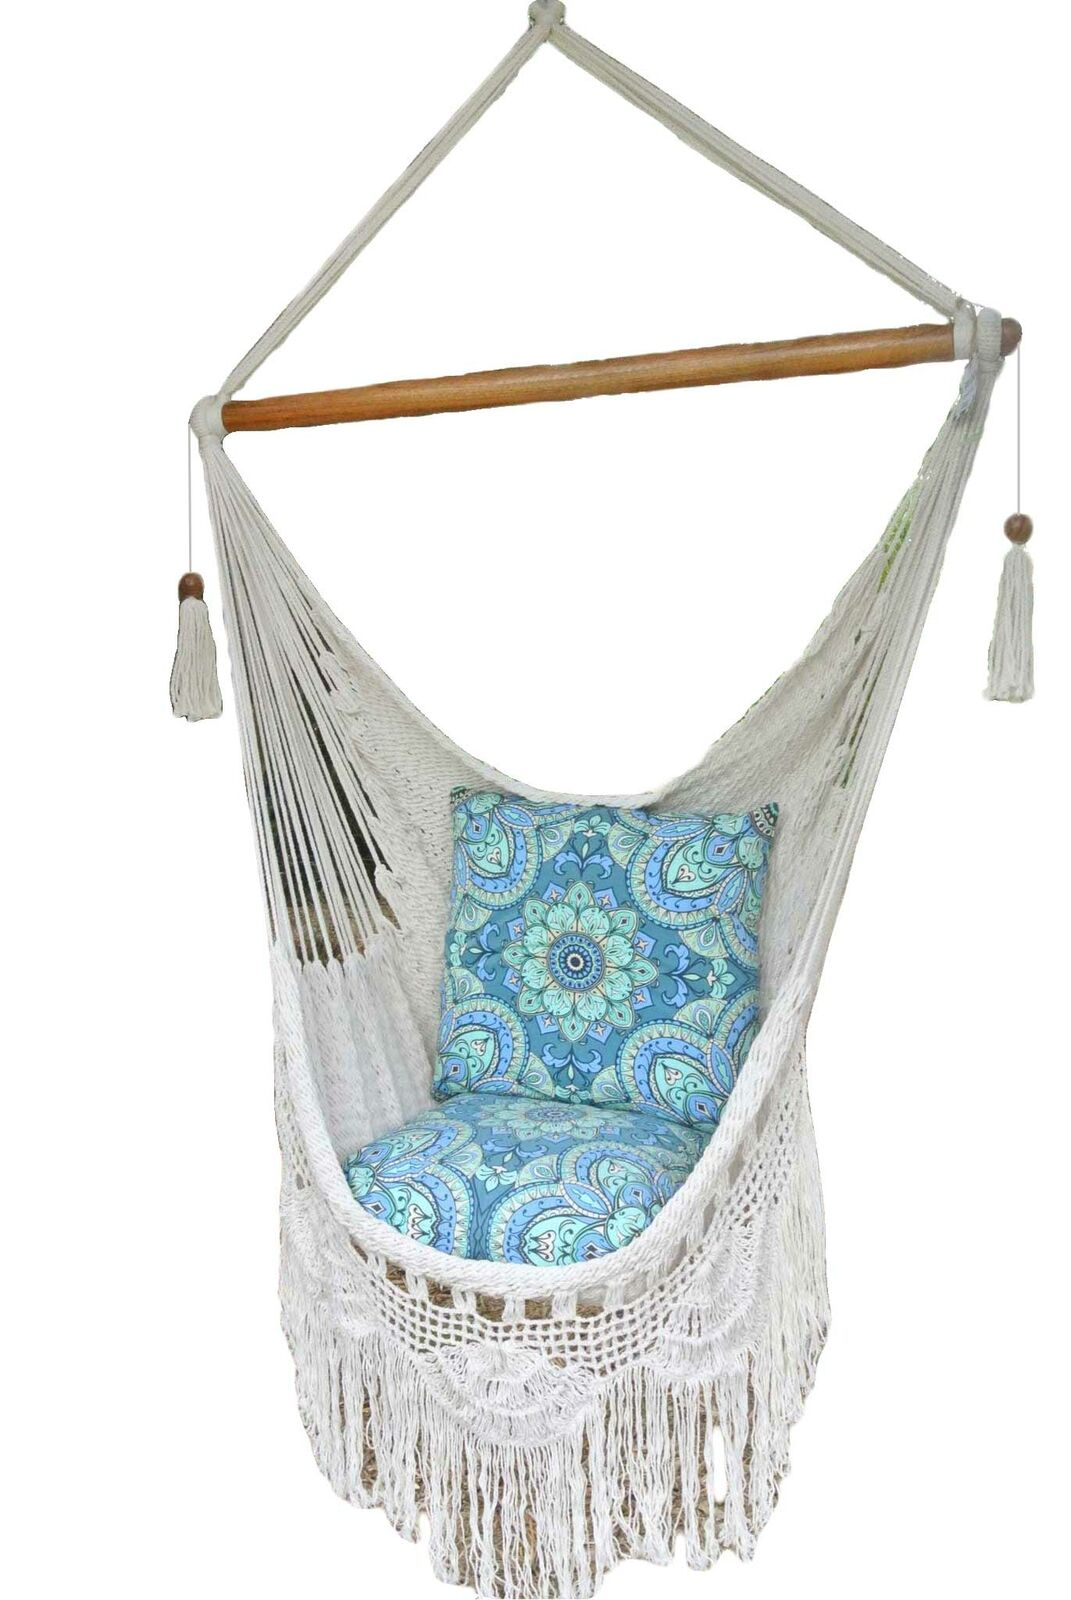 Indoor and outdoor hanging chair Hammock chair swing hammock with fringe detail Chair boho hammock